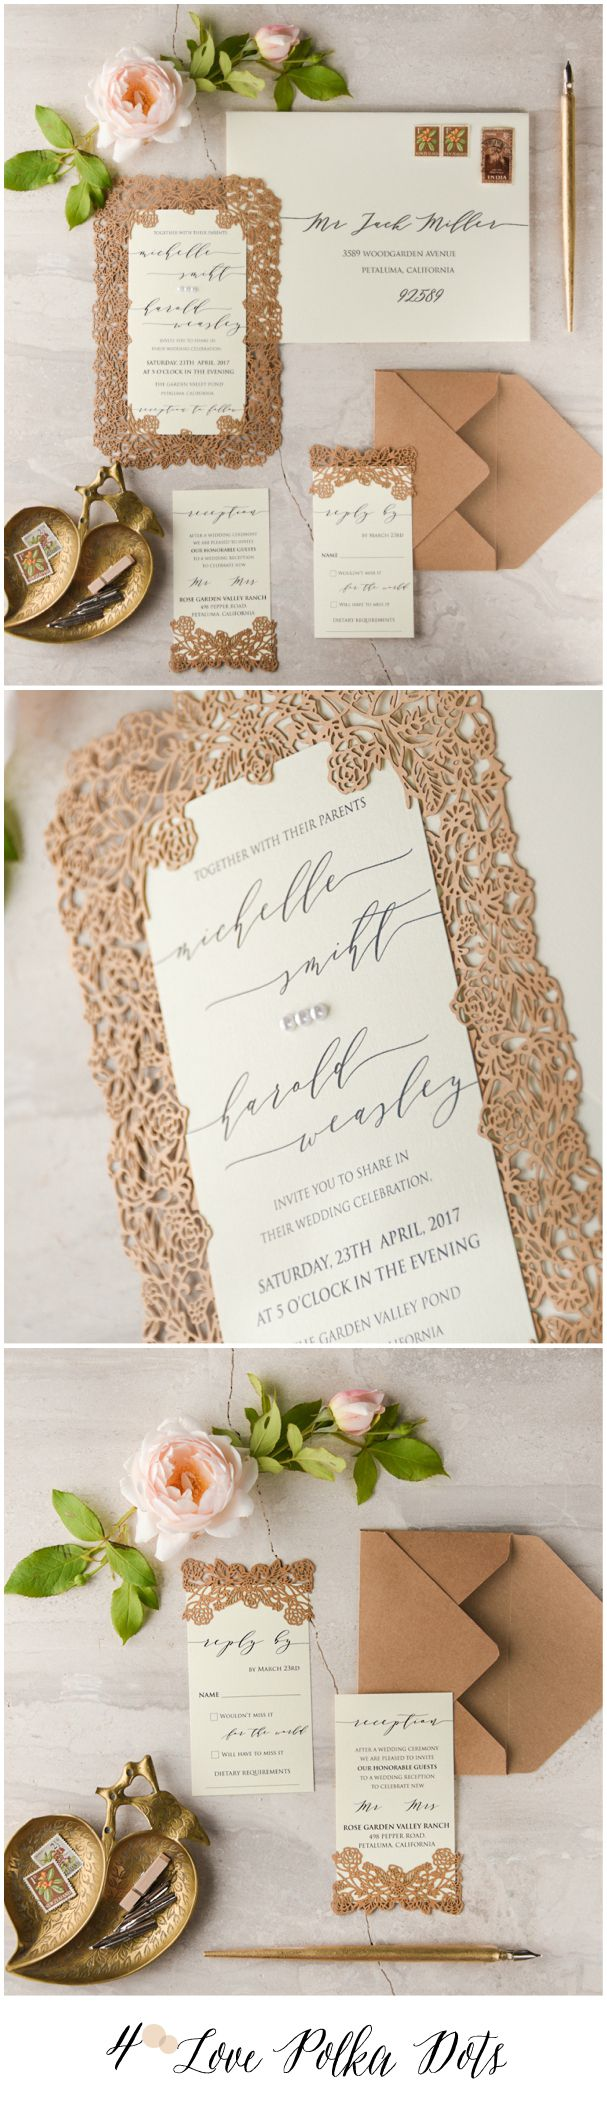 Nude & Neutrals – laser cut lace romantic wedding invitations #sponsored